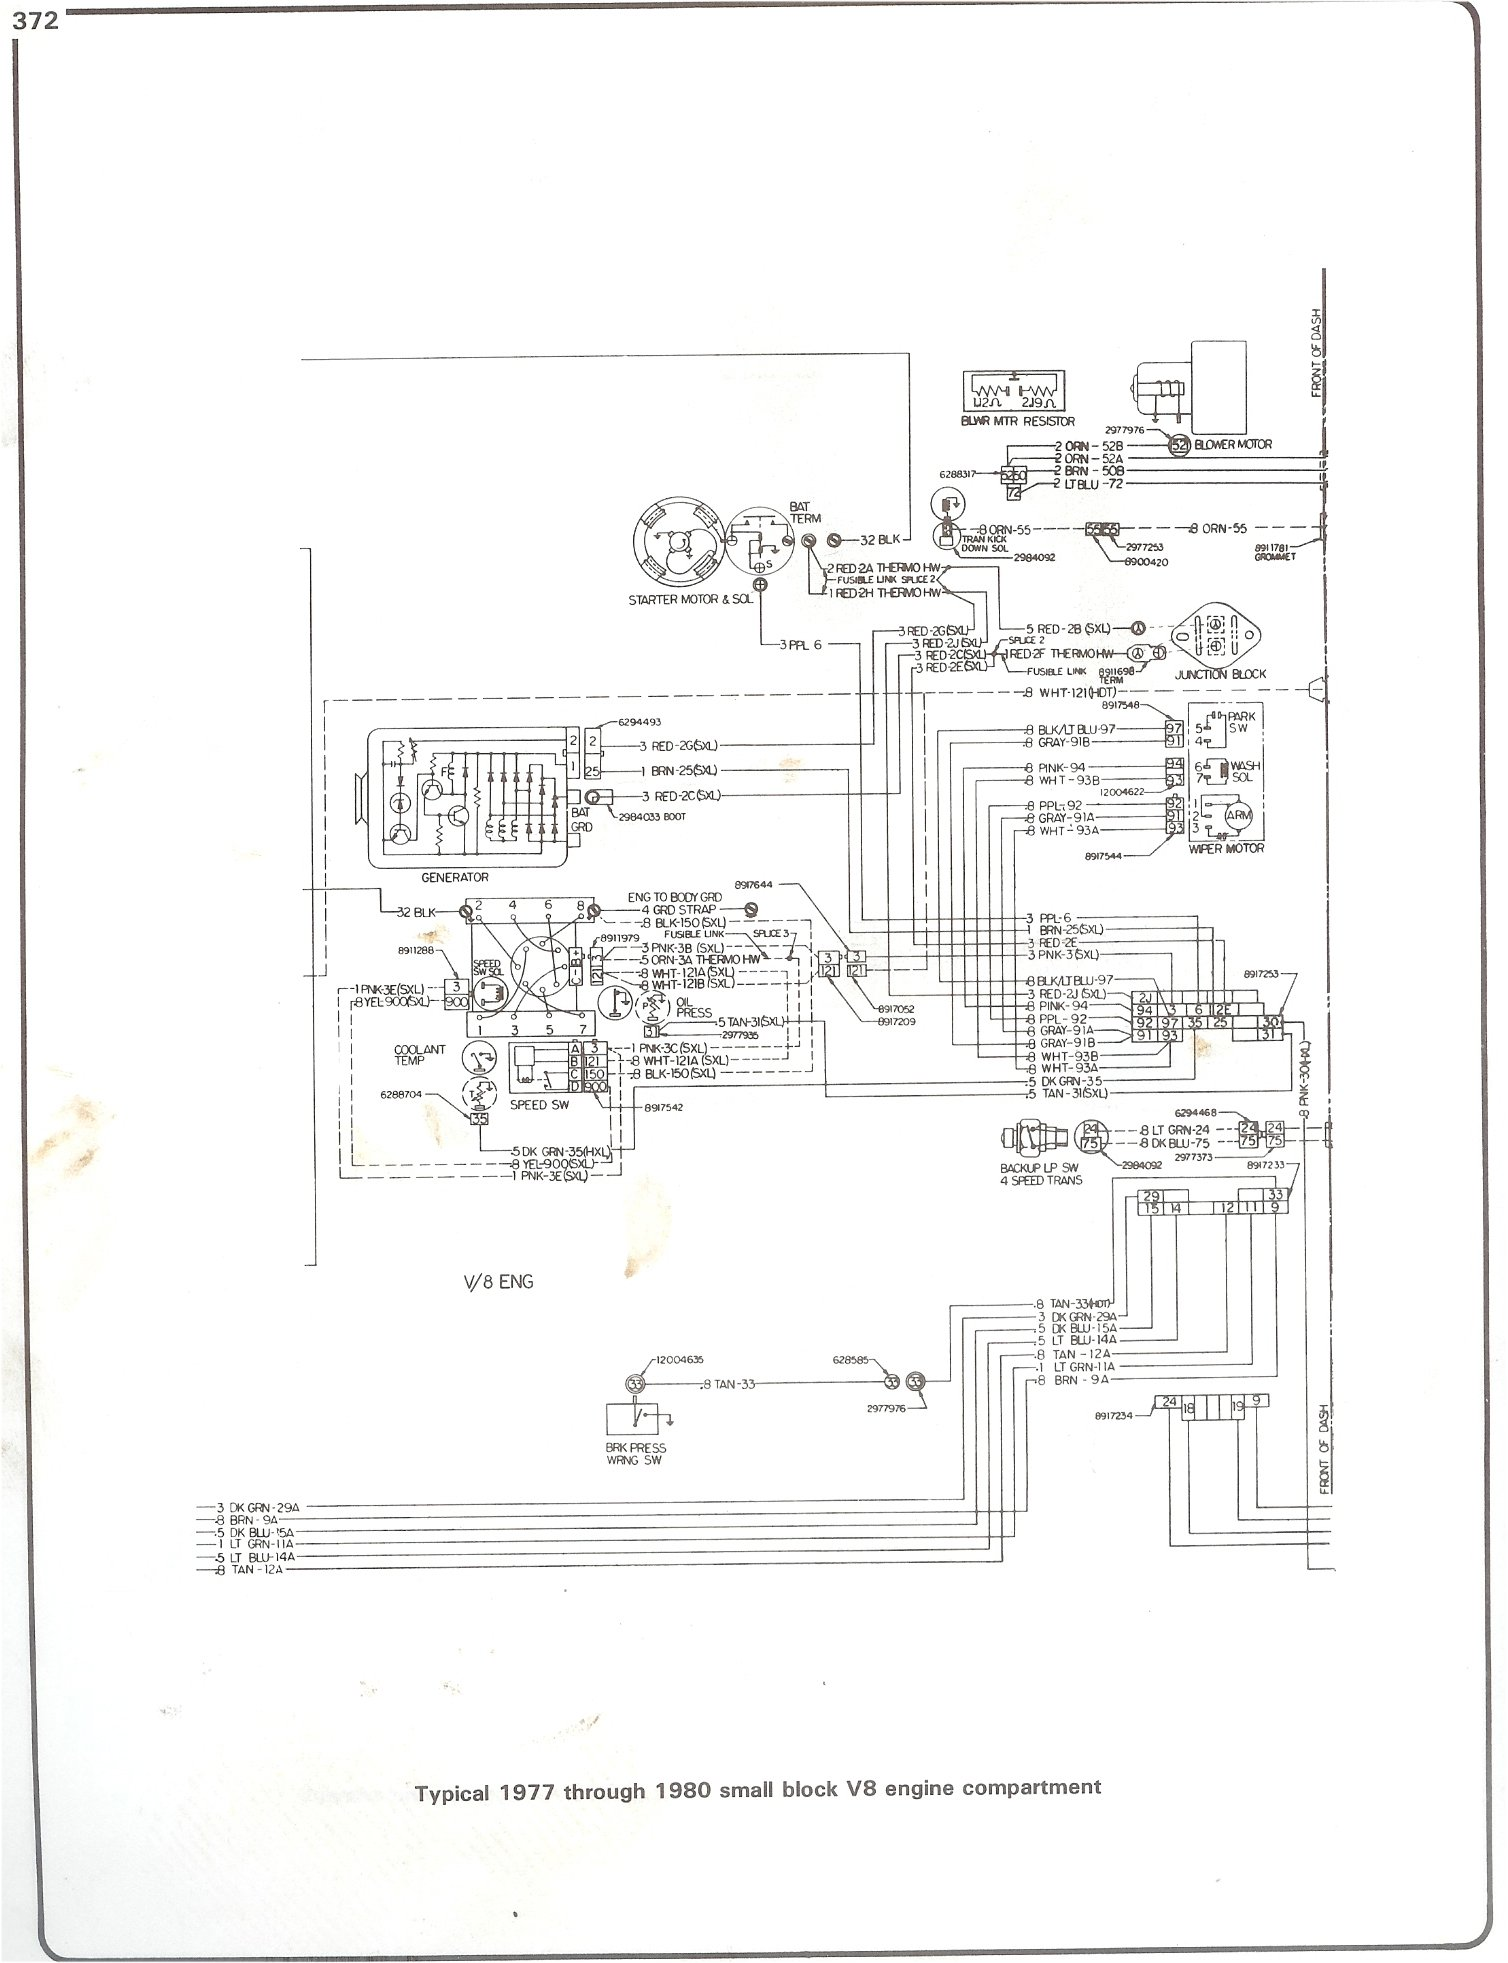 84 K20 Wiring Diagram Free Picture Schematic Diagrams Symbols In Home Download Complete 73 87 Rh Forum 87chevytrucks Com Refrigerator